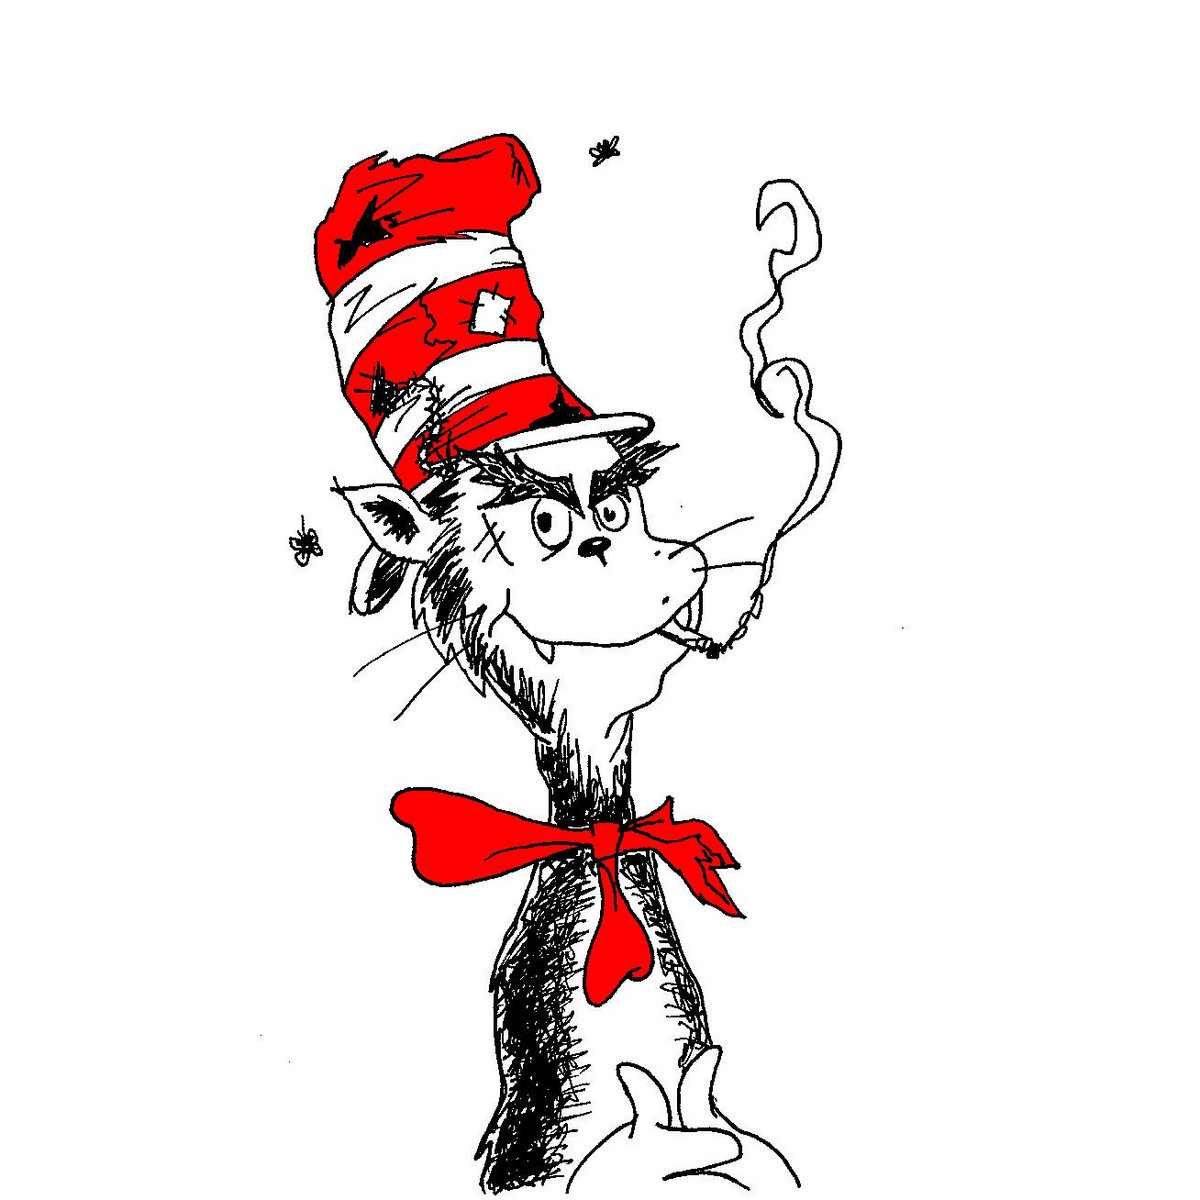 ... Clipart clip art of dr seuss images together with dr seuss border